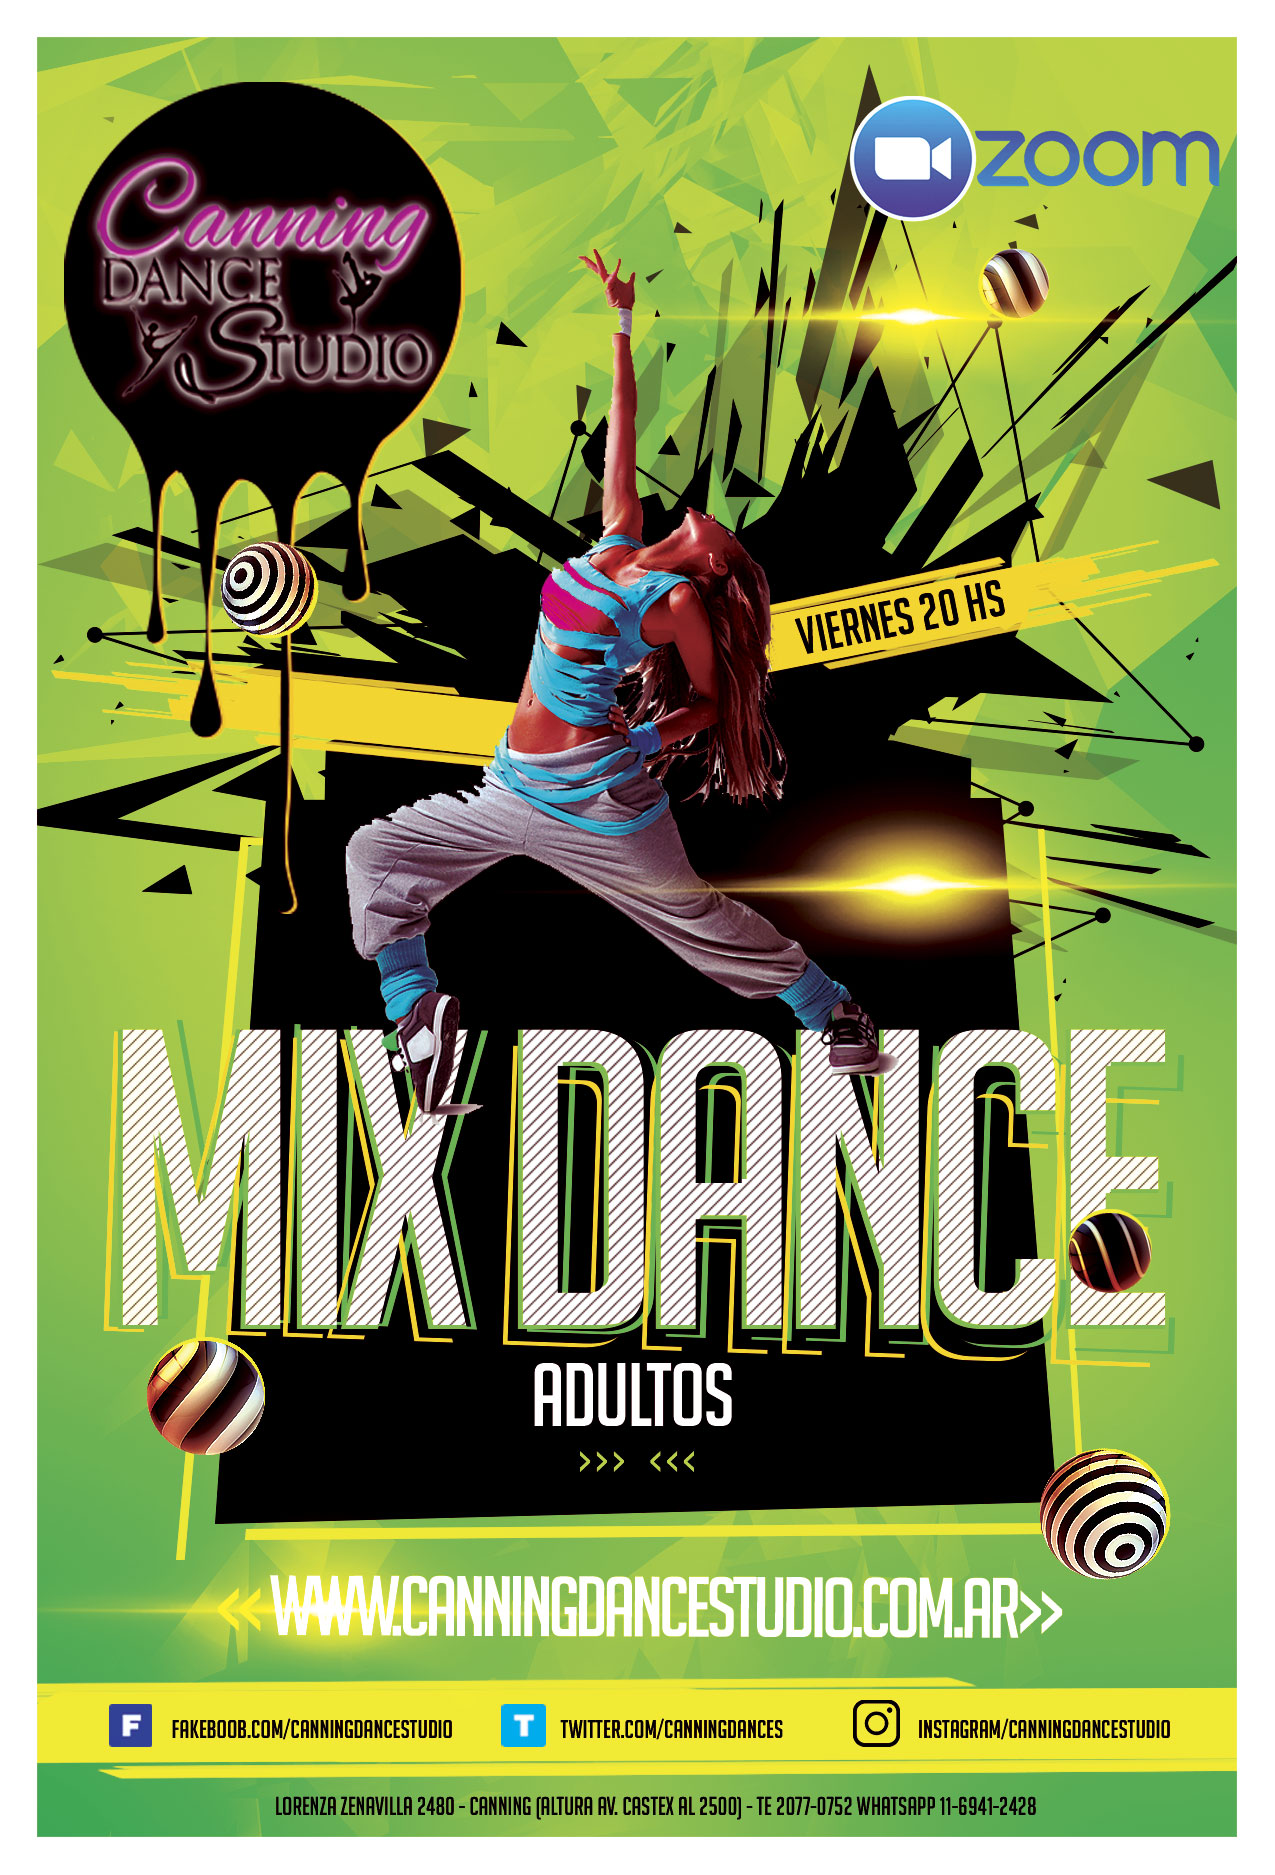 mIX-dANCE-aDULTOS